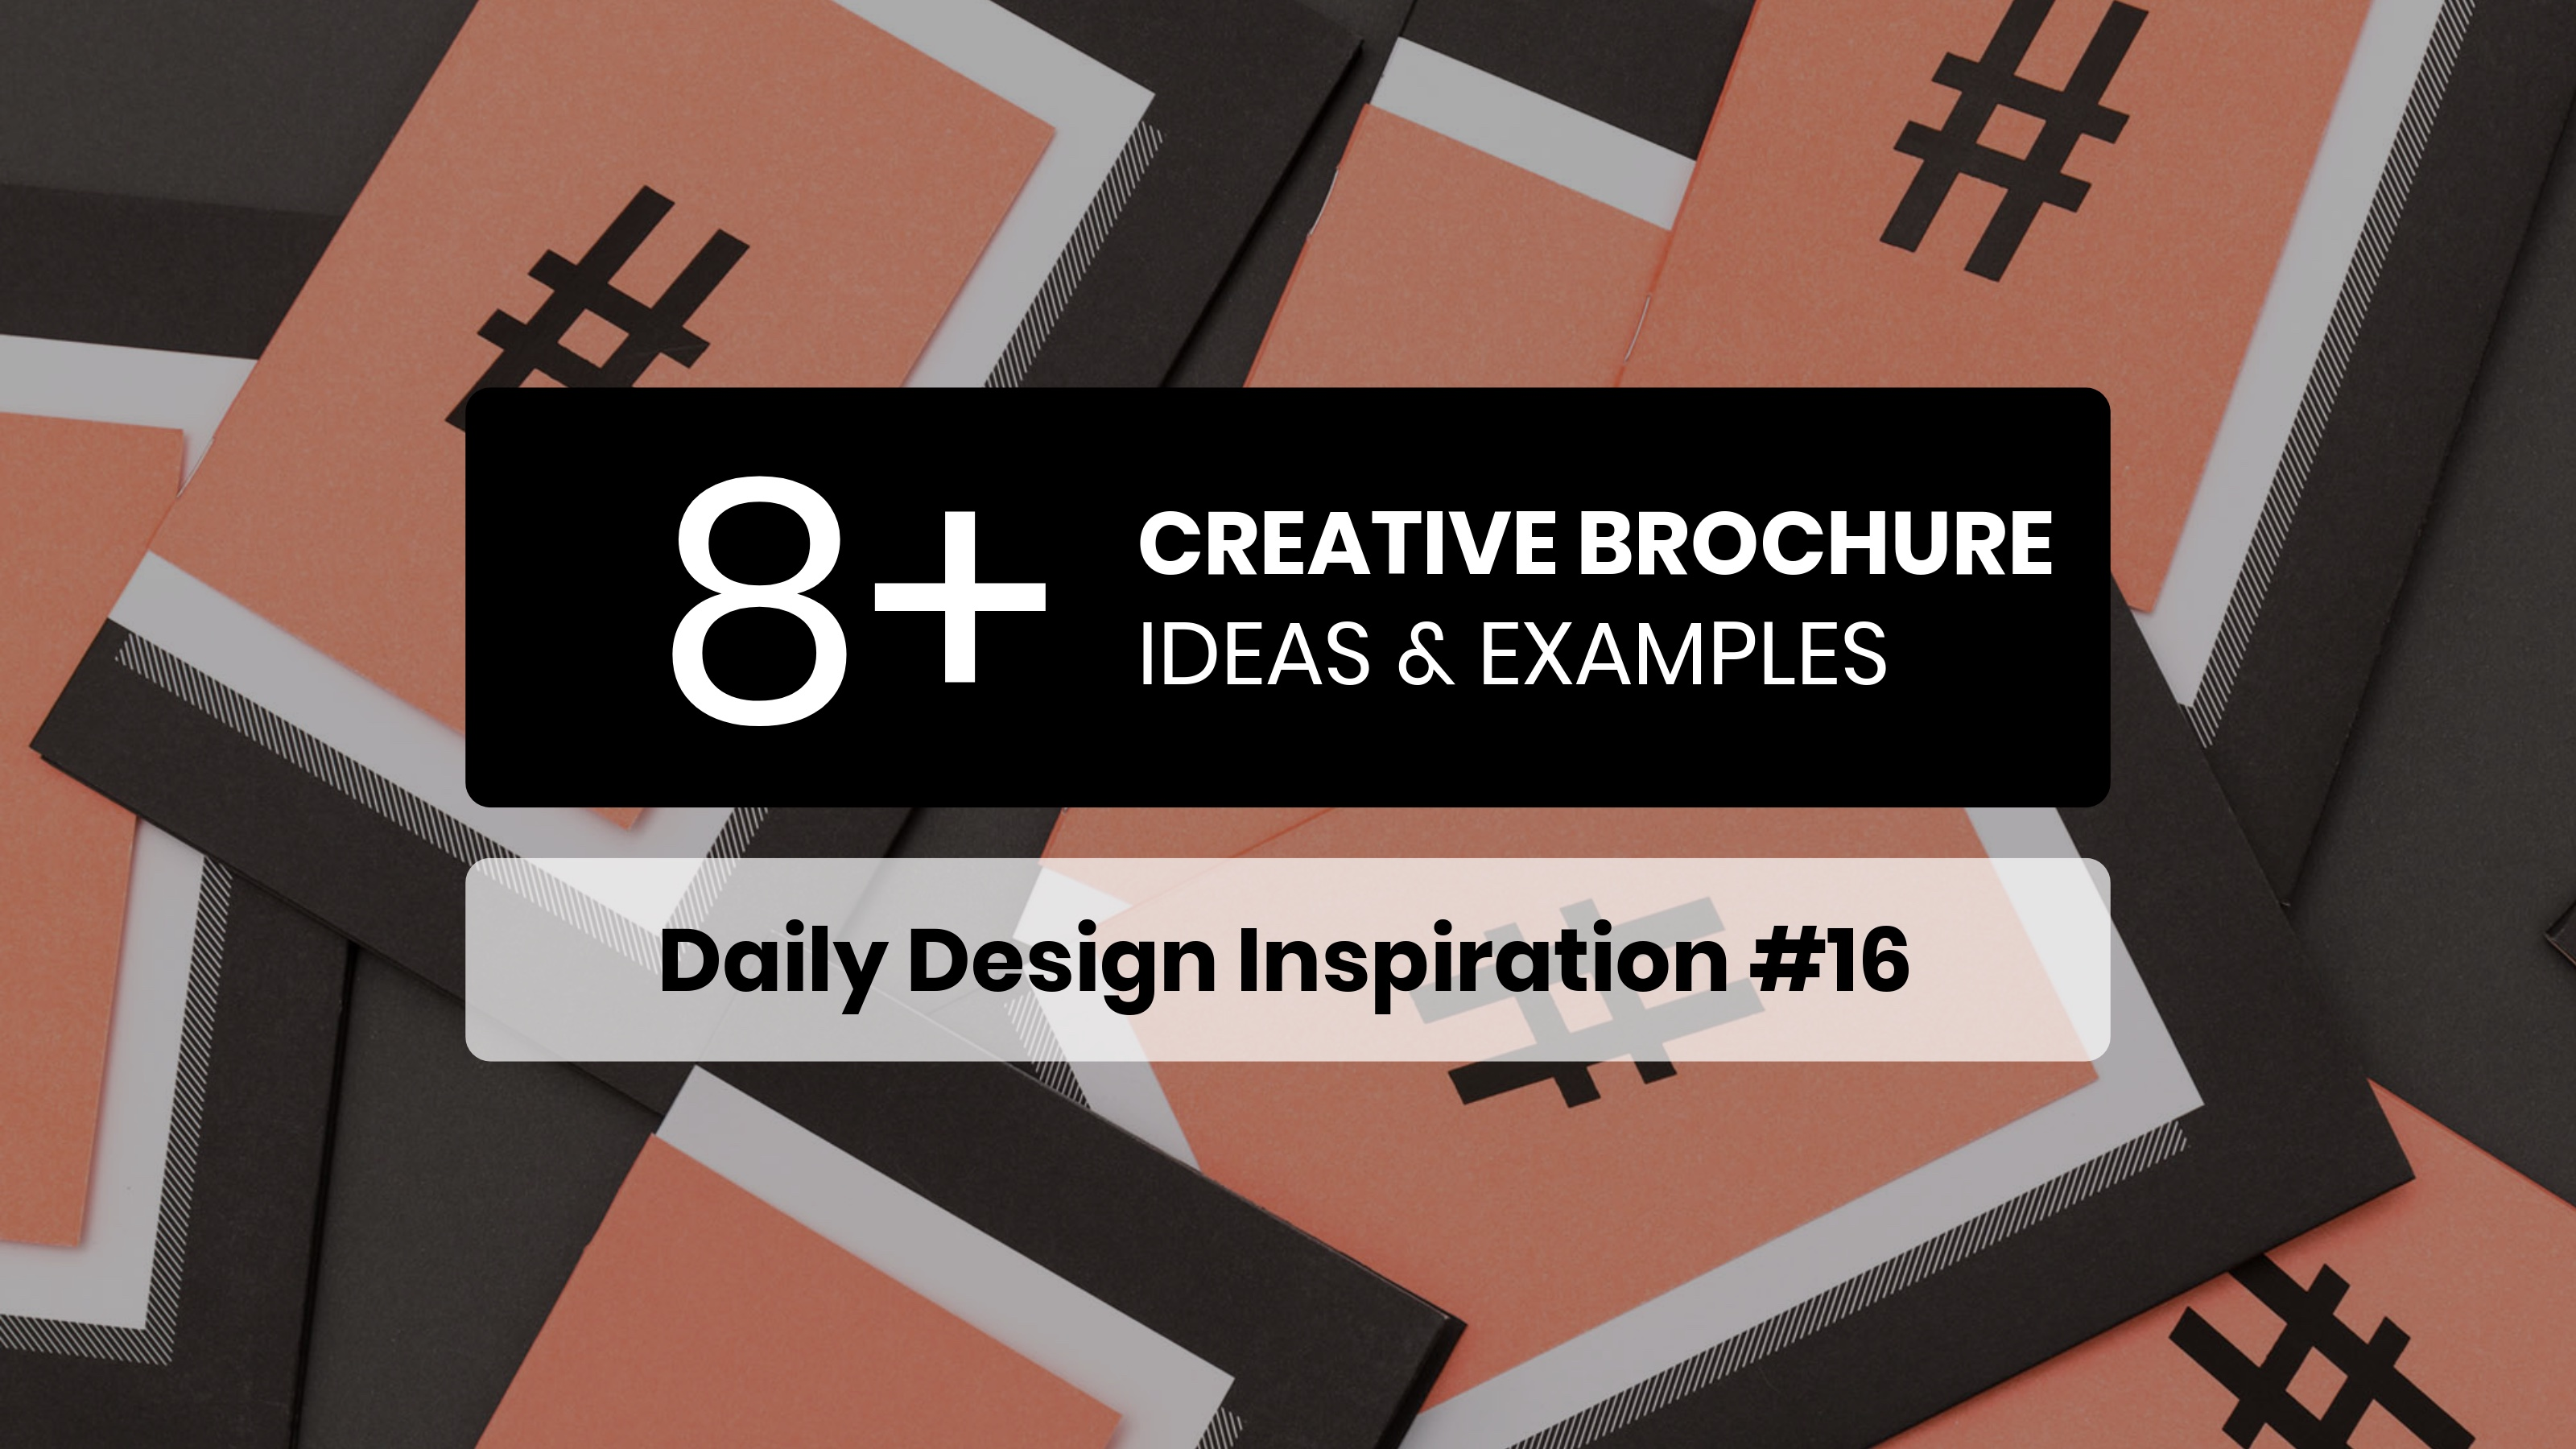 8+ Creative Brochure Design Ideas & Examples - Daily Design Inspiration #16